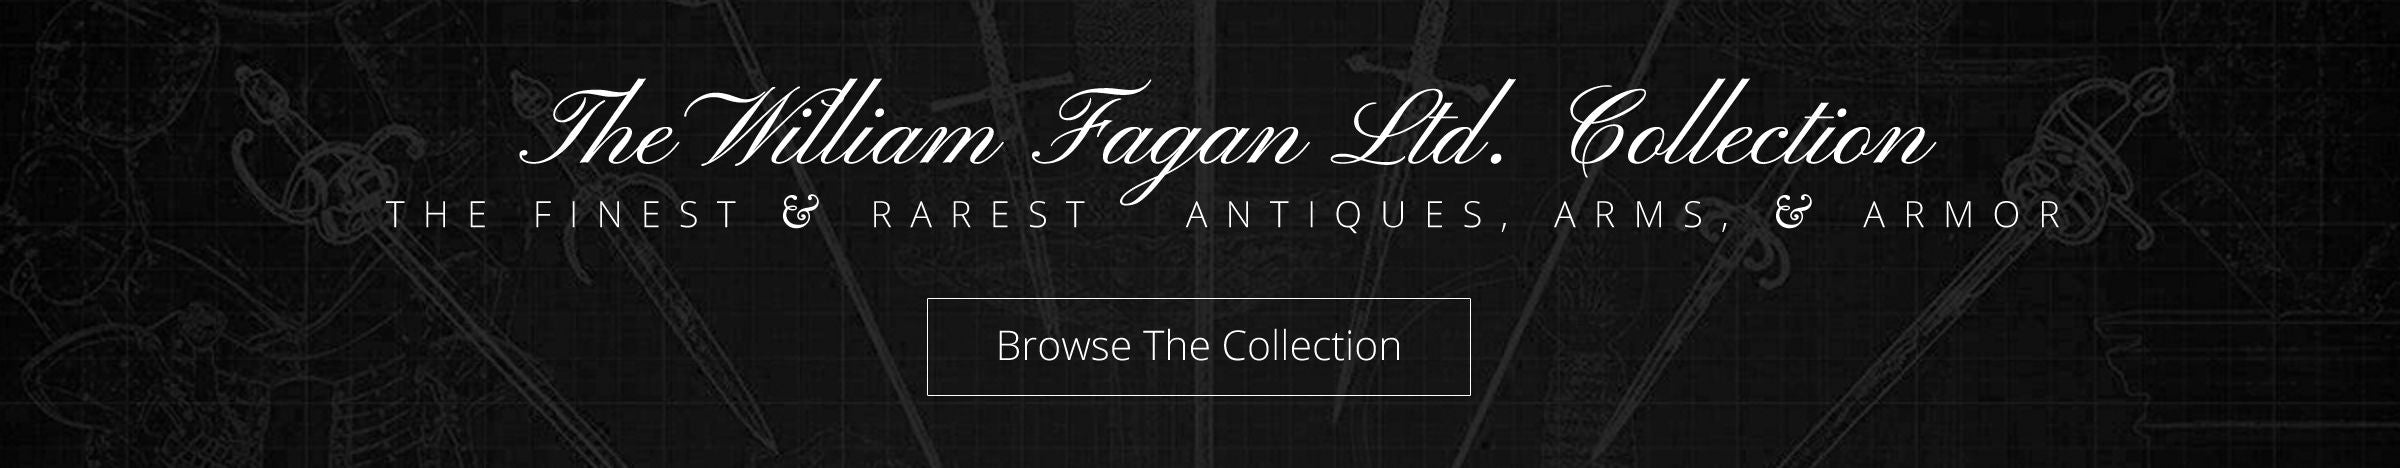 The William Fagan Ltd. Collection